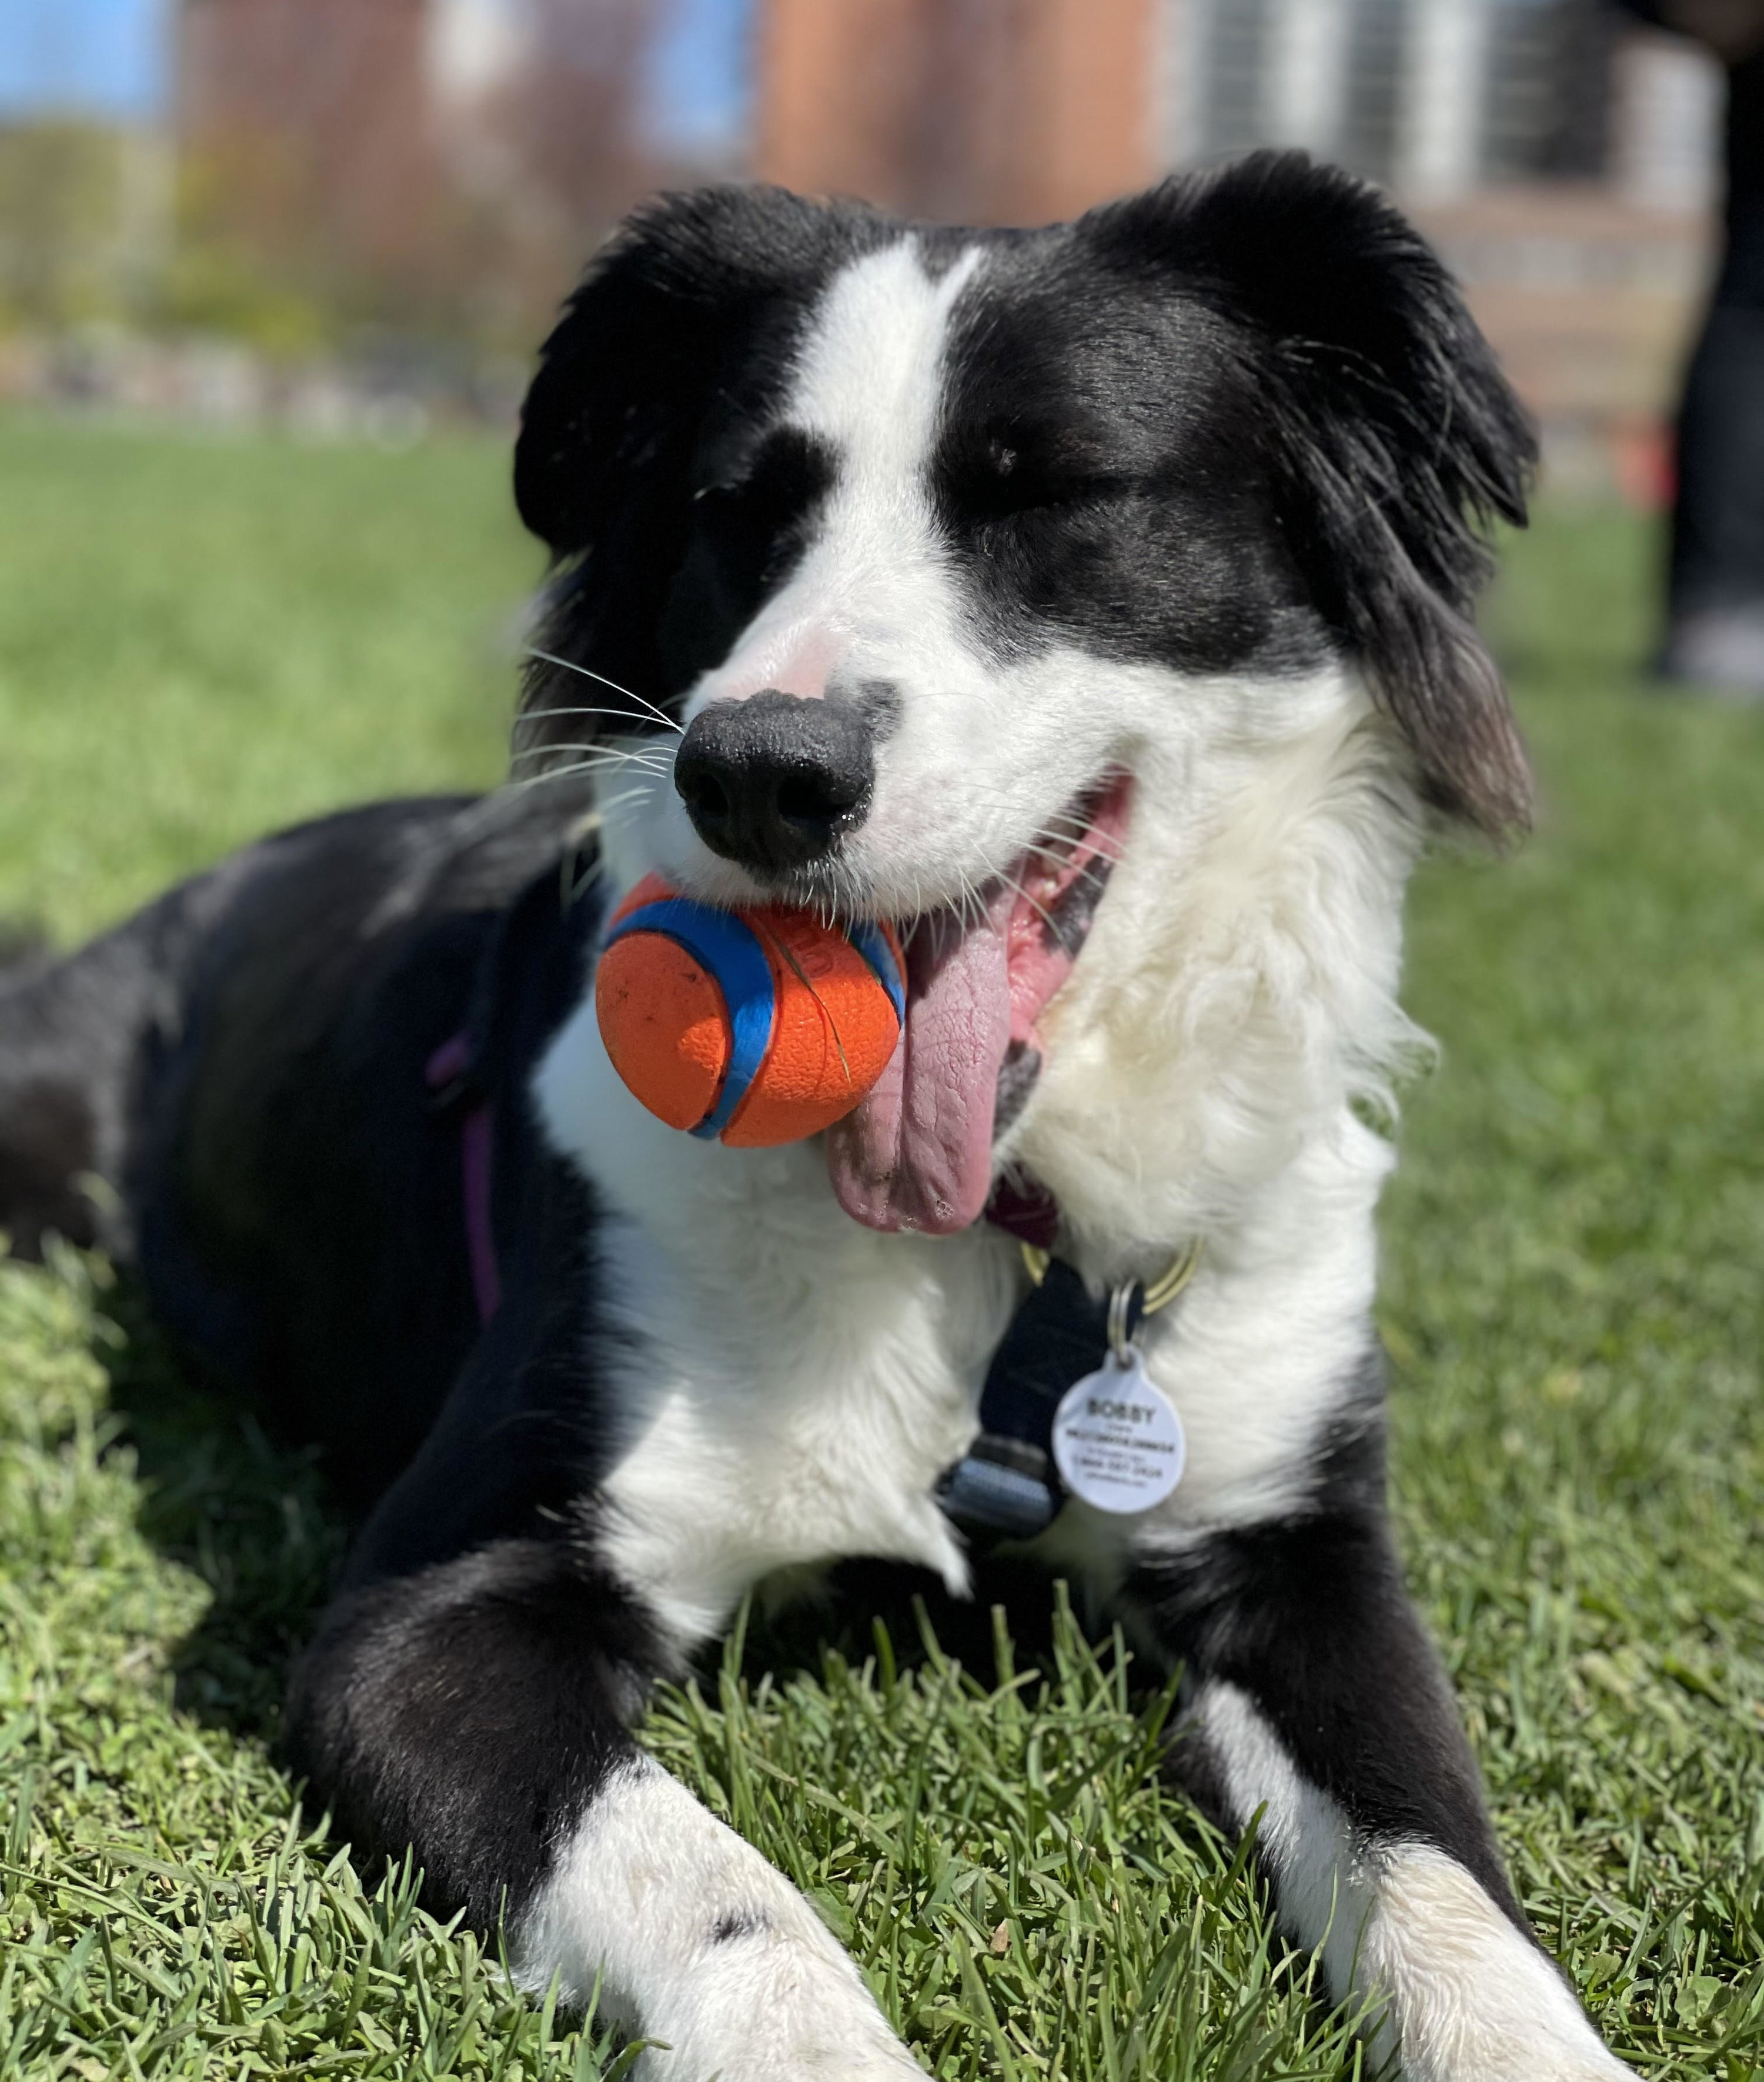 A dog with a ball in its mouth